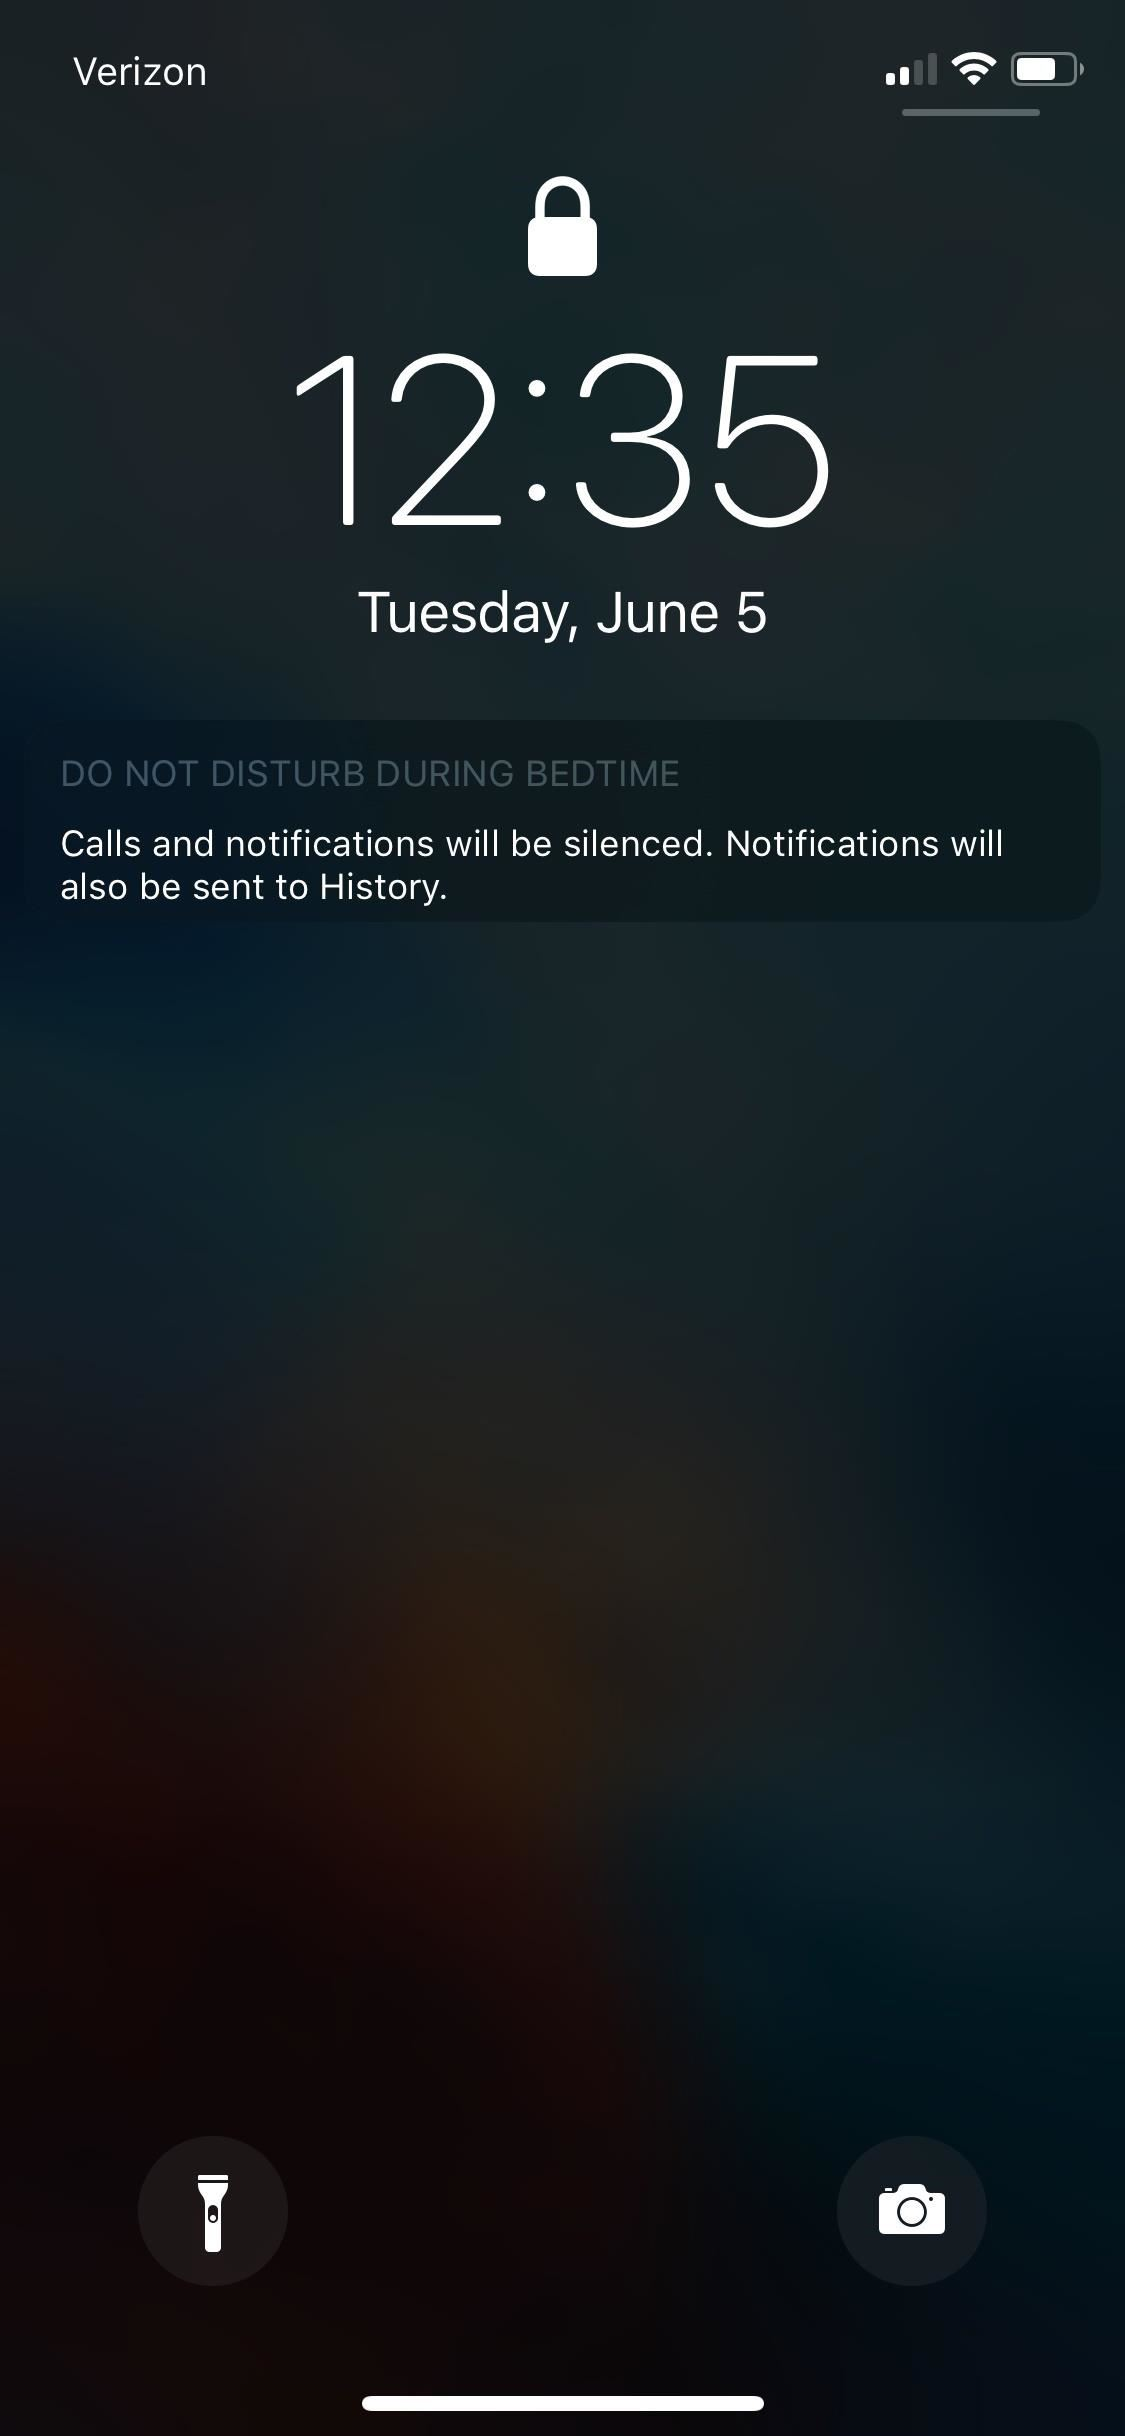 44 cool new iOS 12 features you did not know